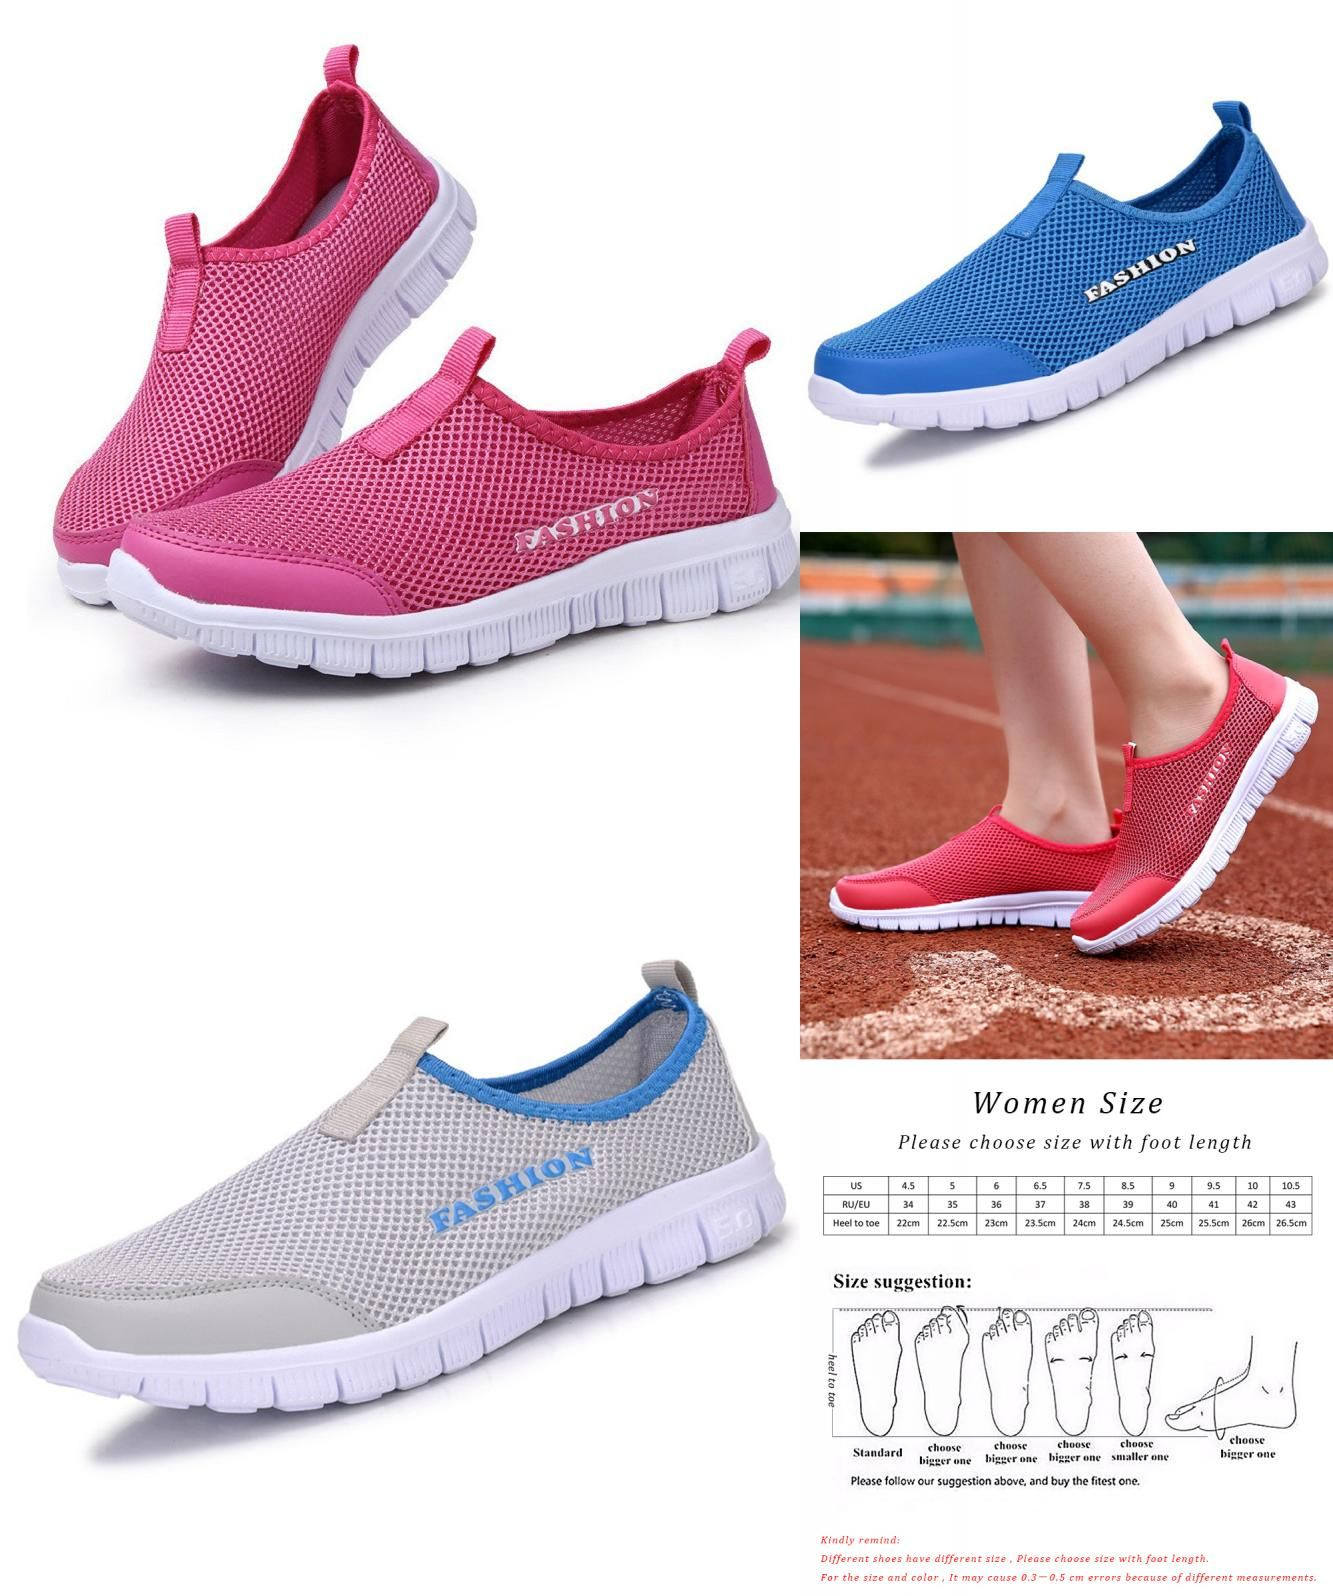 26 Ideas On What Color Shoes to Wear With Blue Dress recommend